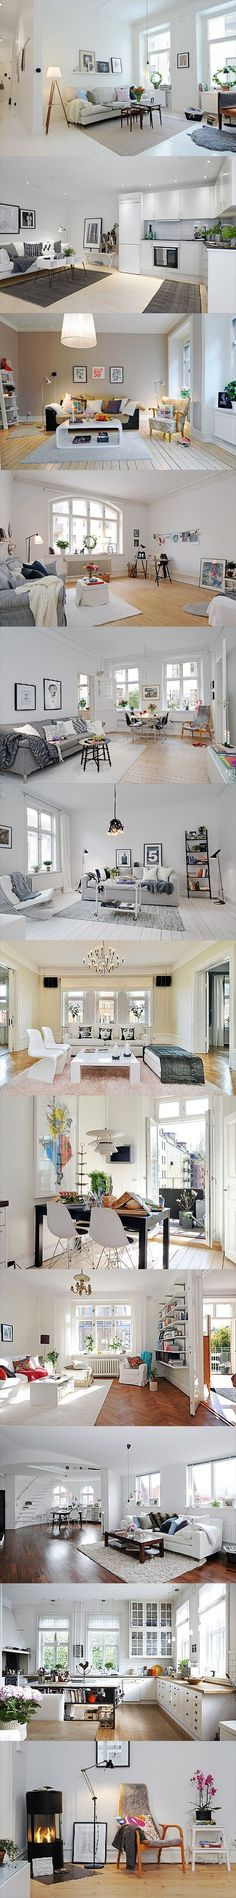 Beautiful & Stylish Scandinavian interior design inspiration 02